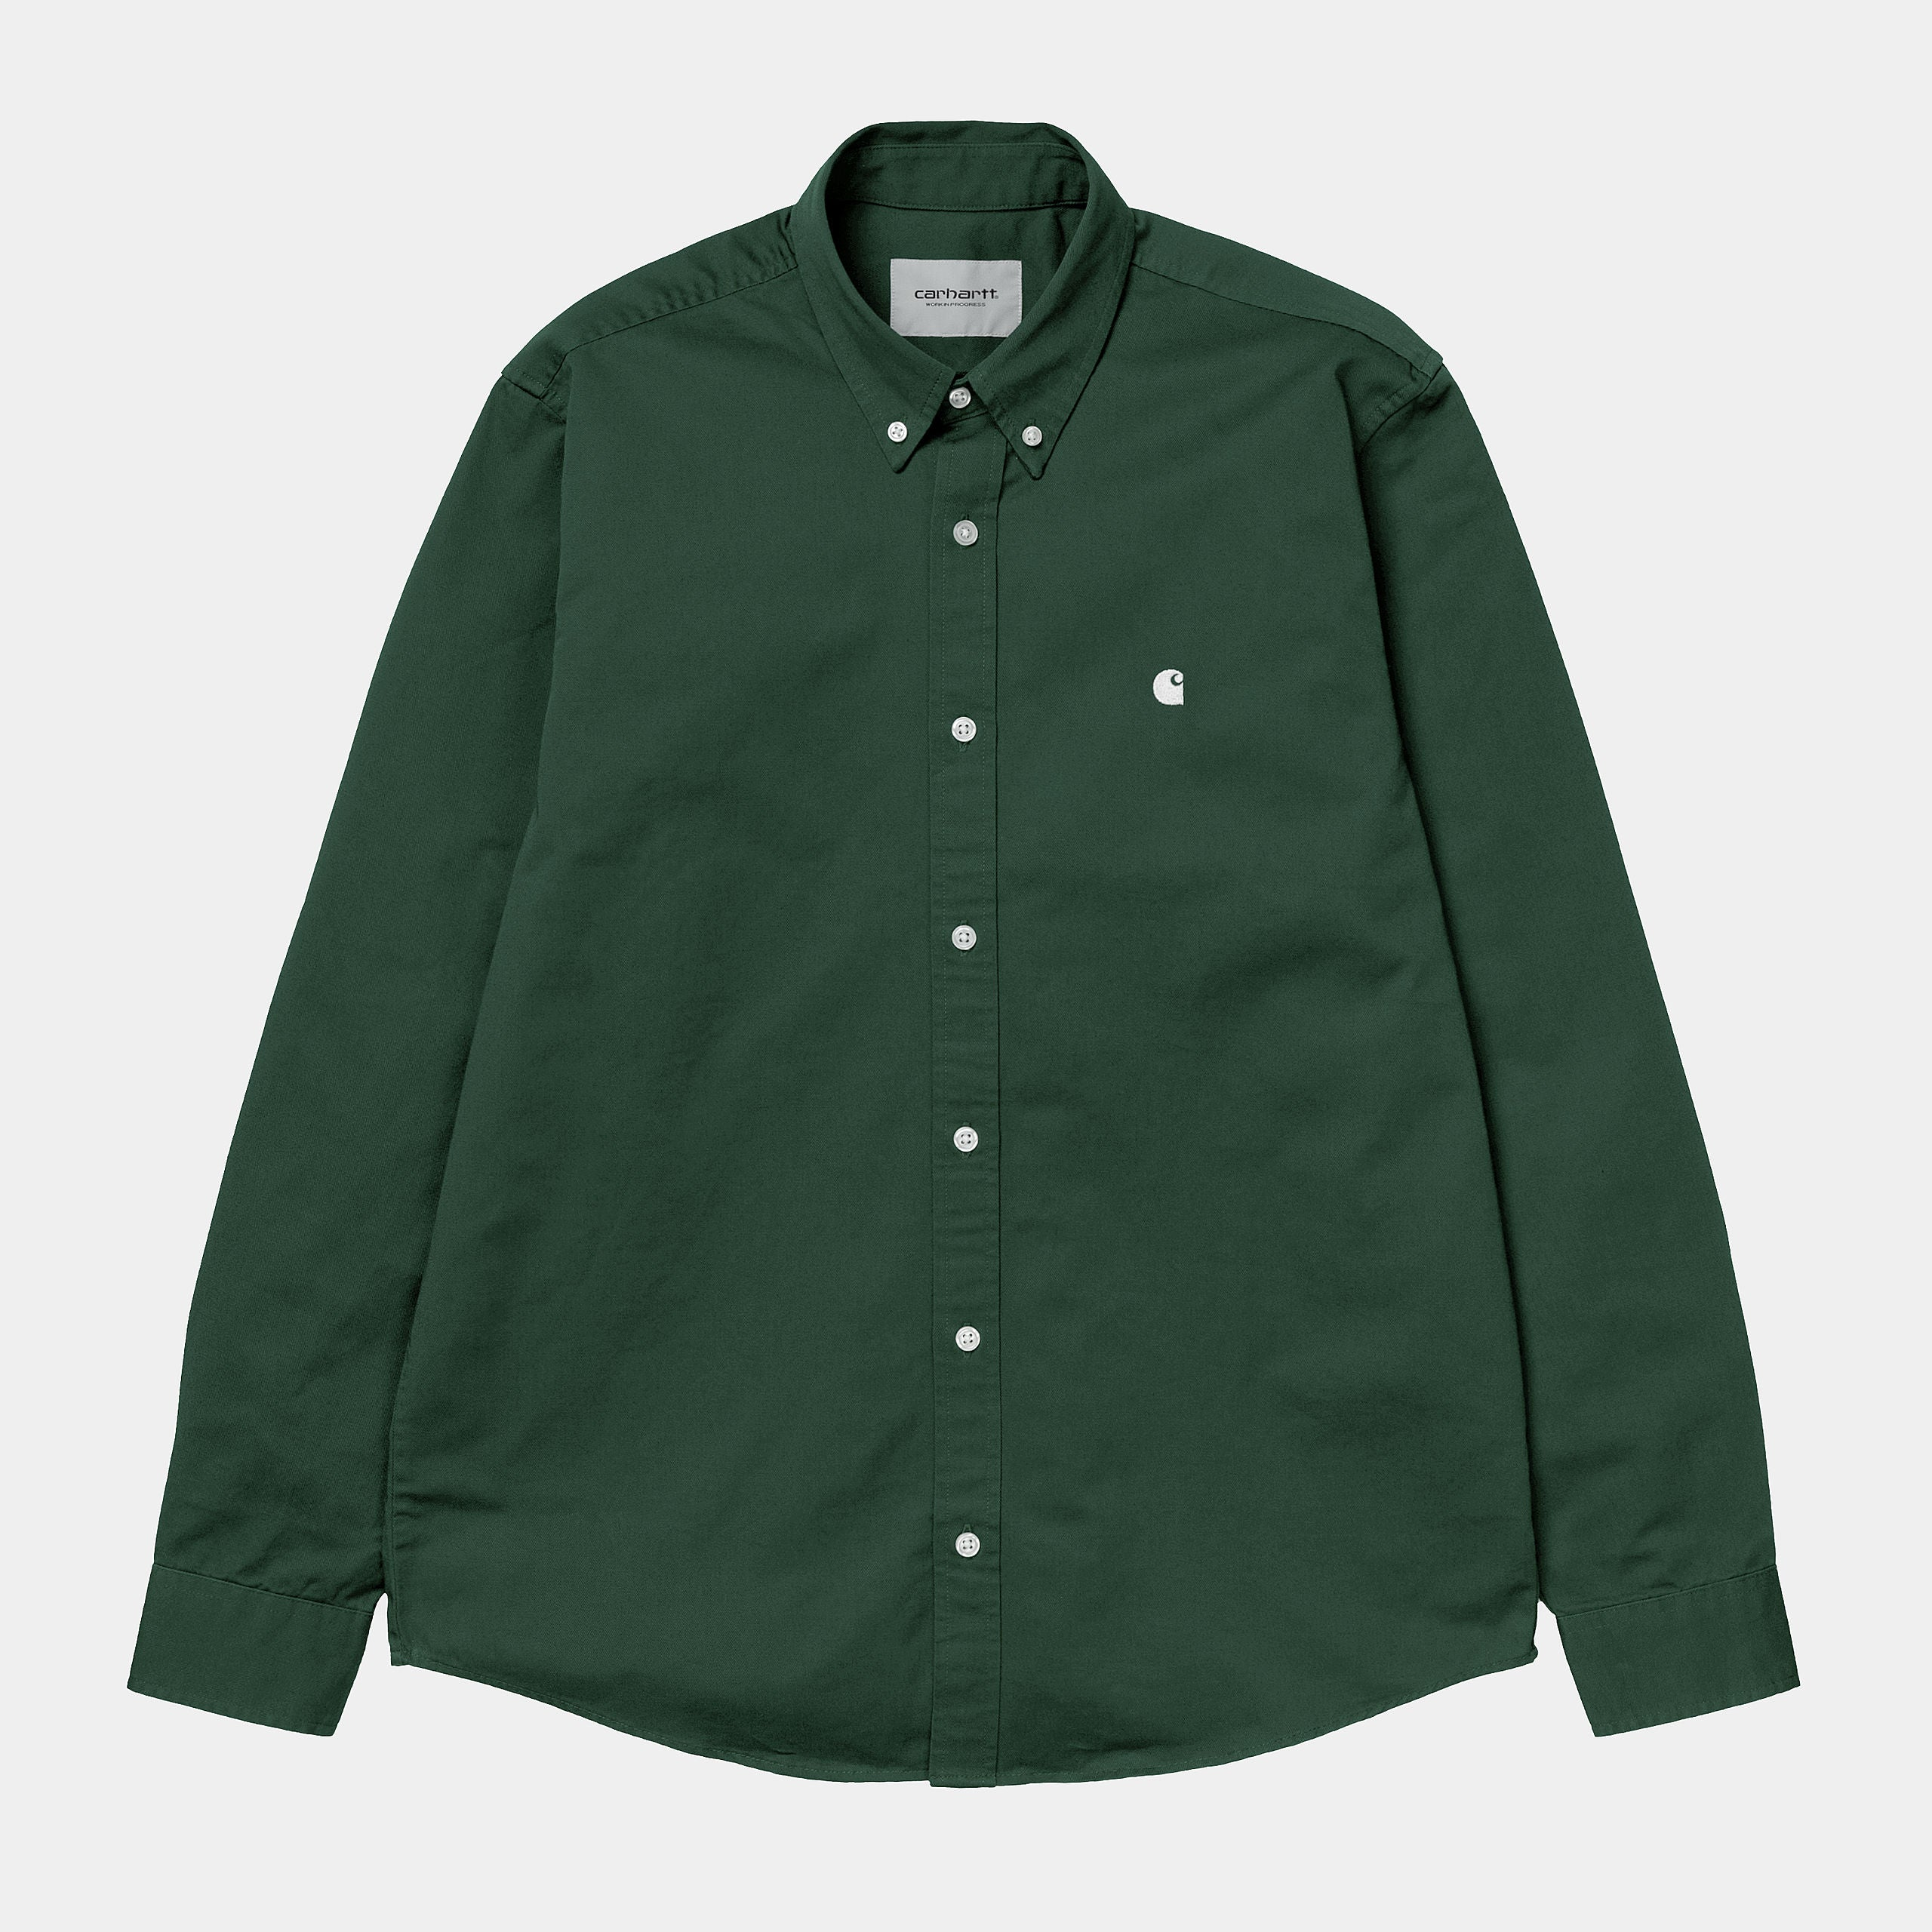 CARHARTT WIP L/S MADISON SHIRT